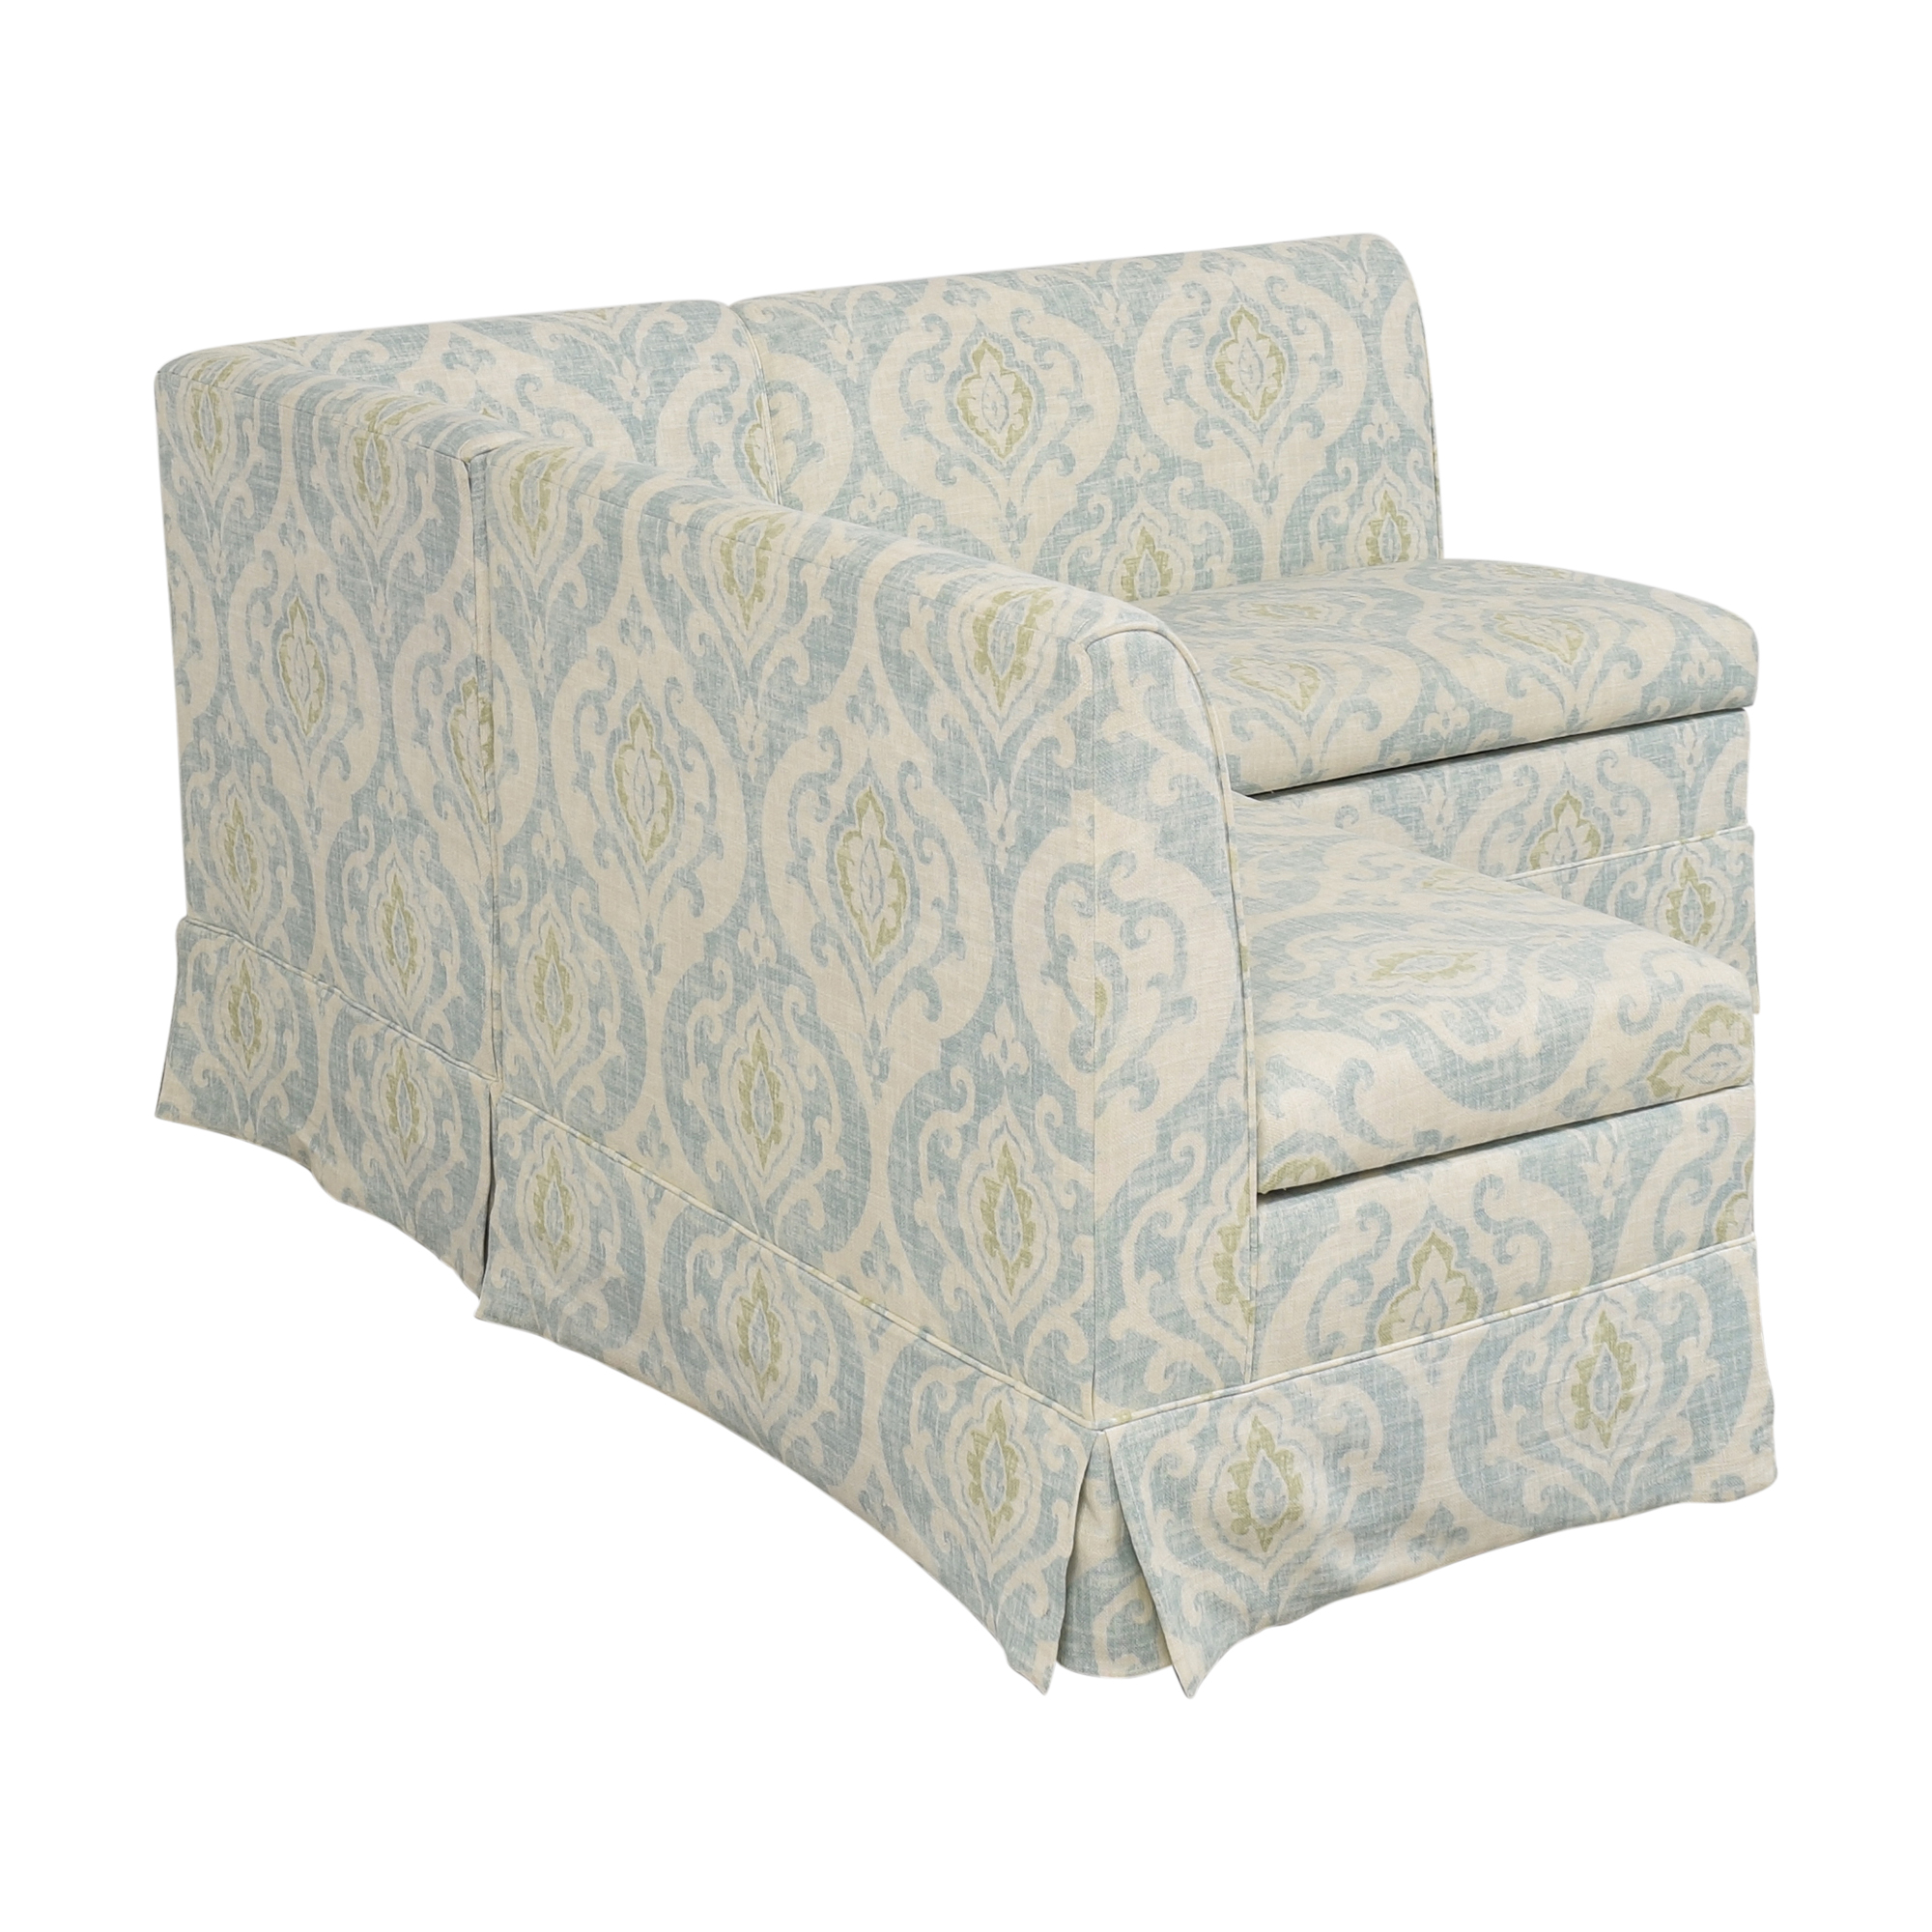 Wisteria Wisteria Sectional Storage Banquette used